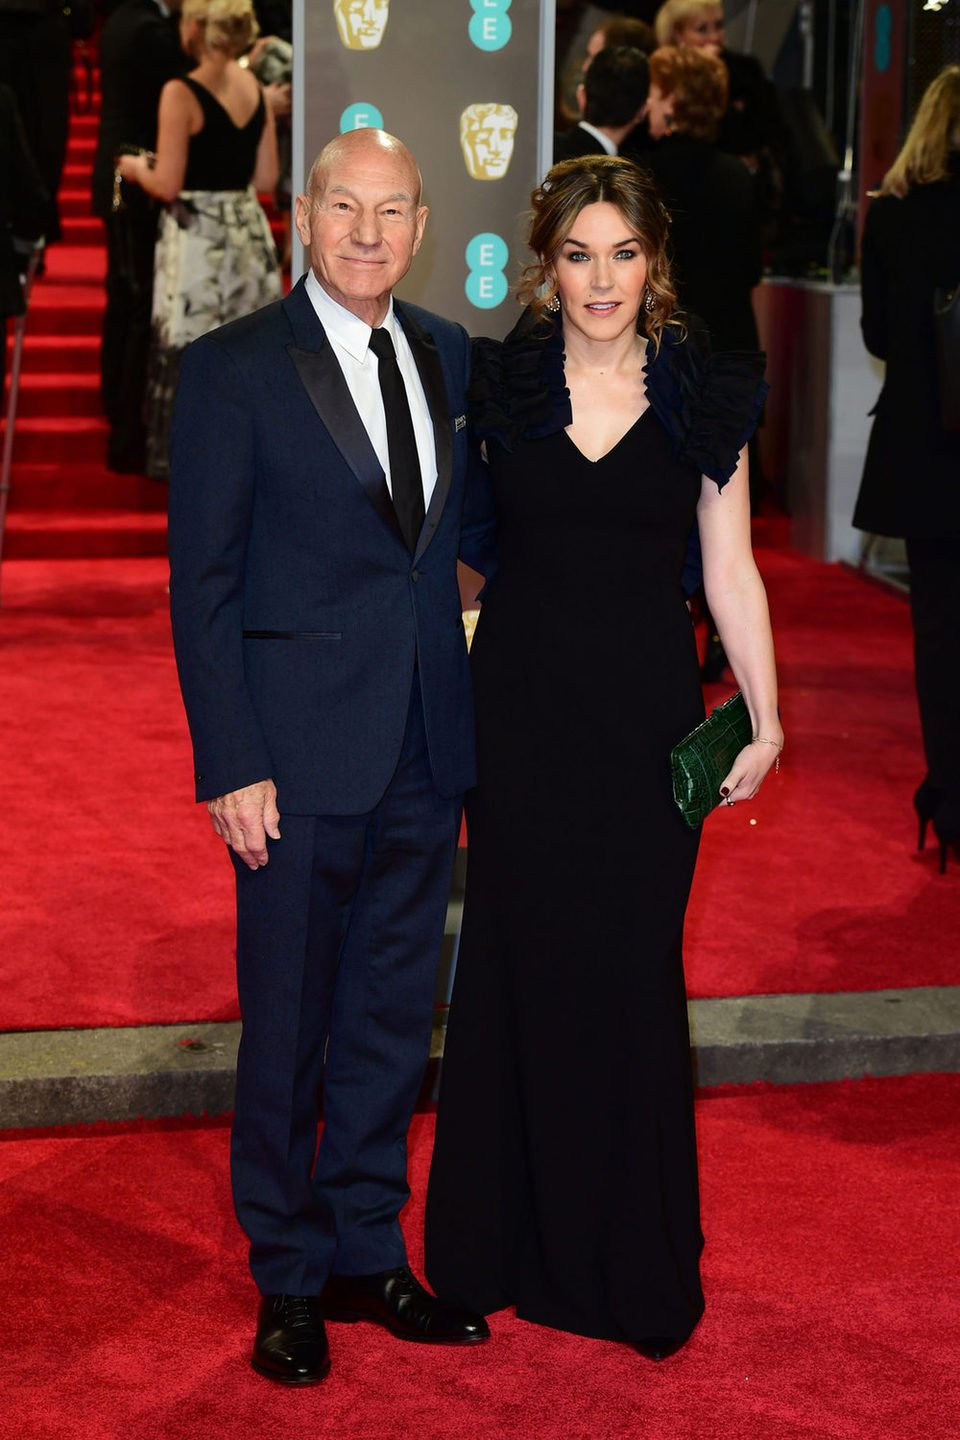 Patrick Stewart and Sunny Ozell at the BAFTA Awards' 2018 red carpet